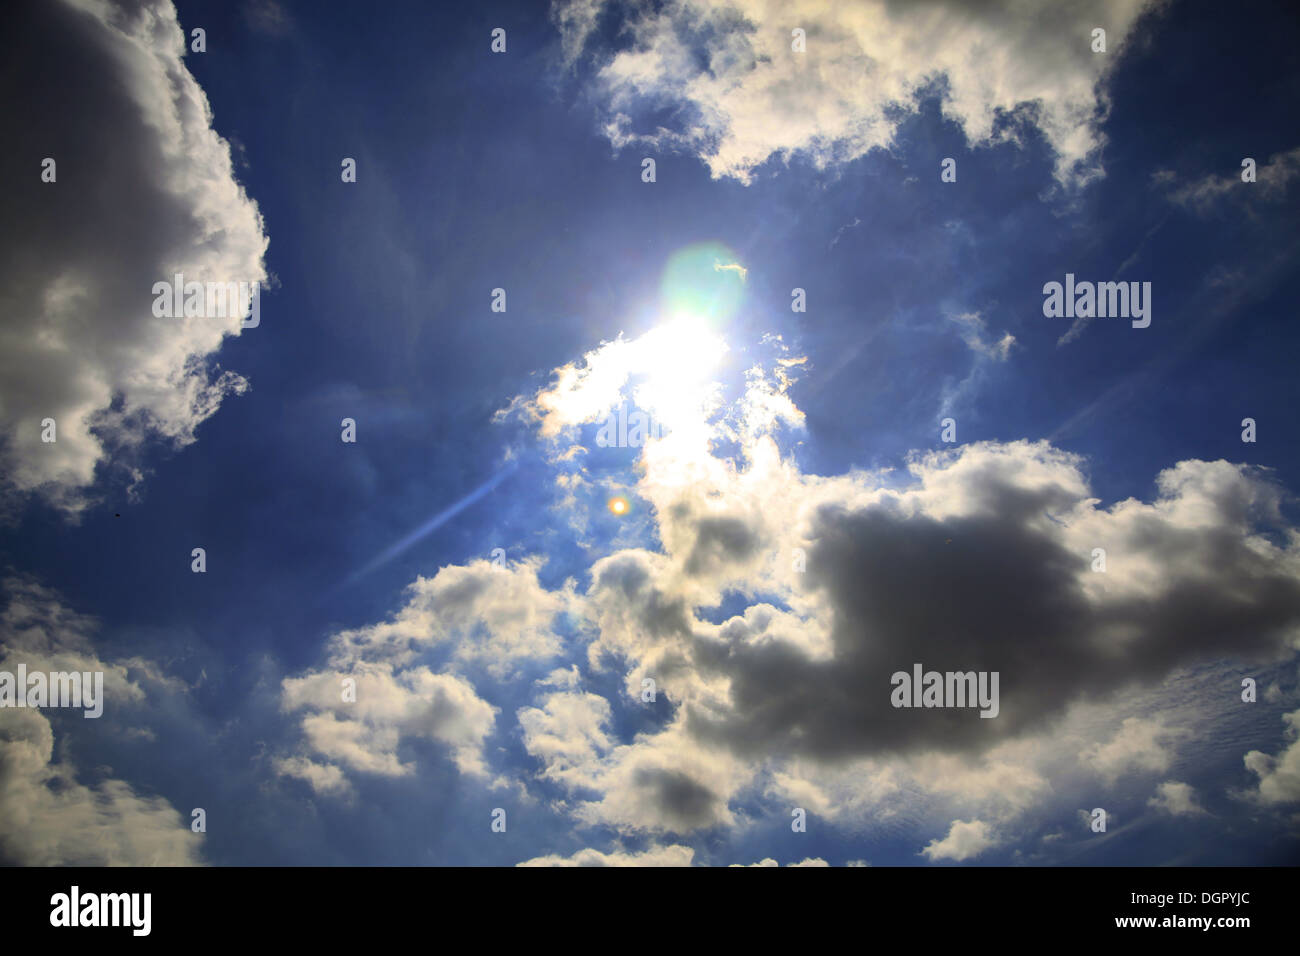 Sky with clouds, sun and lens flare. - Stock Image